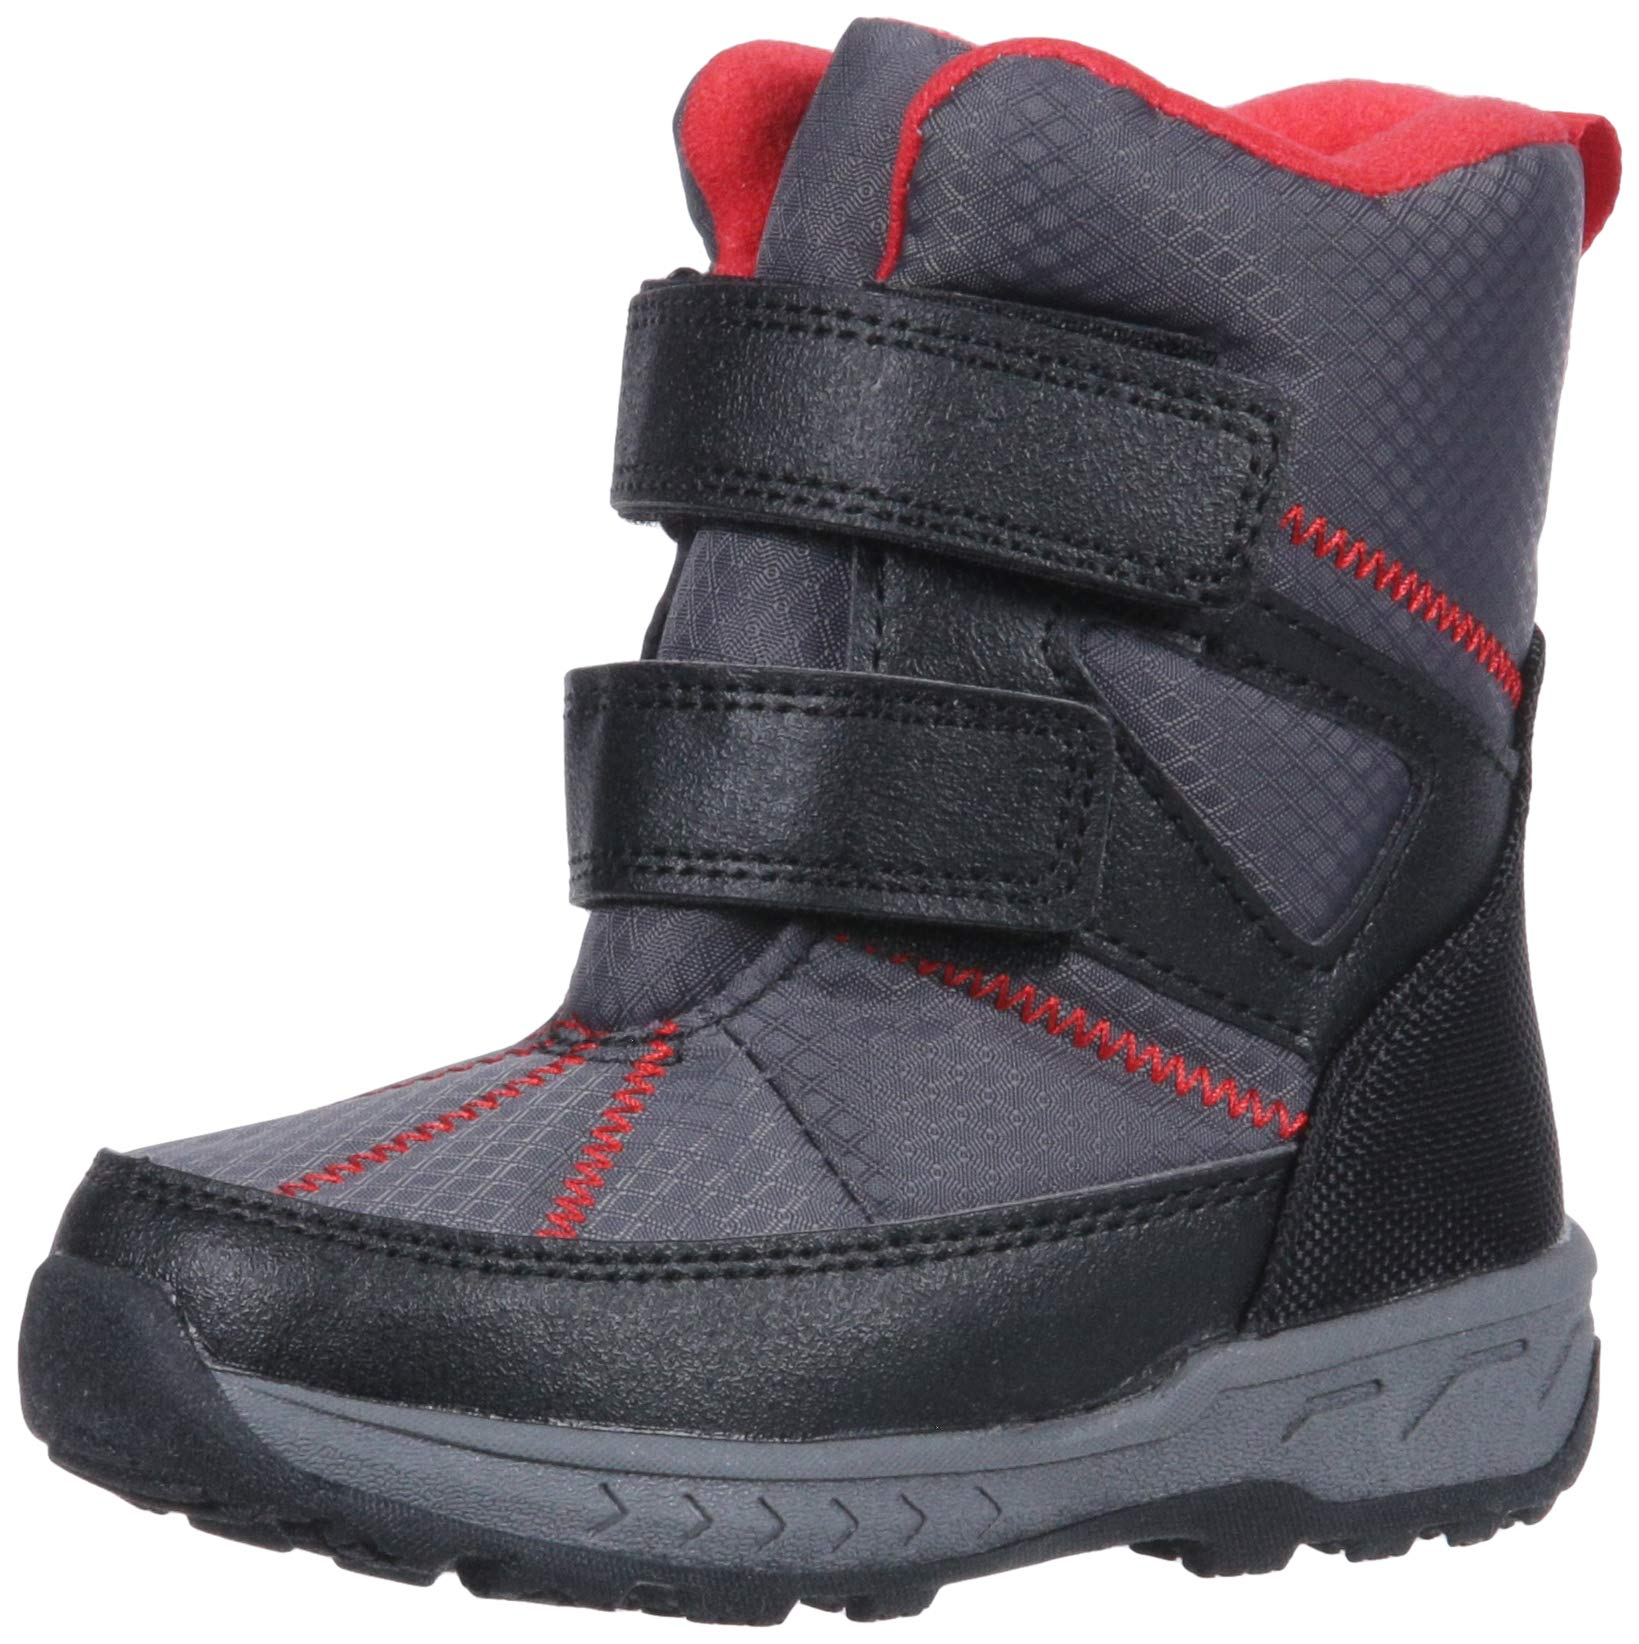 carter's Boys' Booth Cold Weather Snow Boot, Black, 11 M US Little Kid